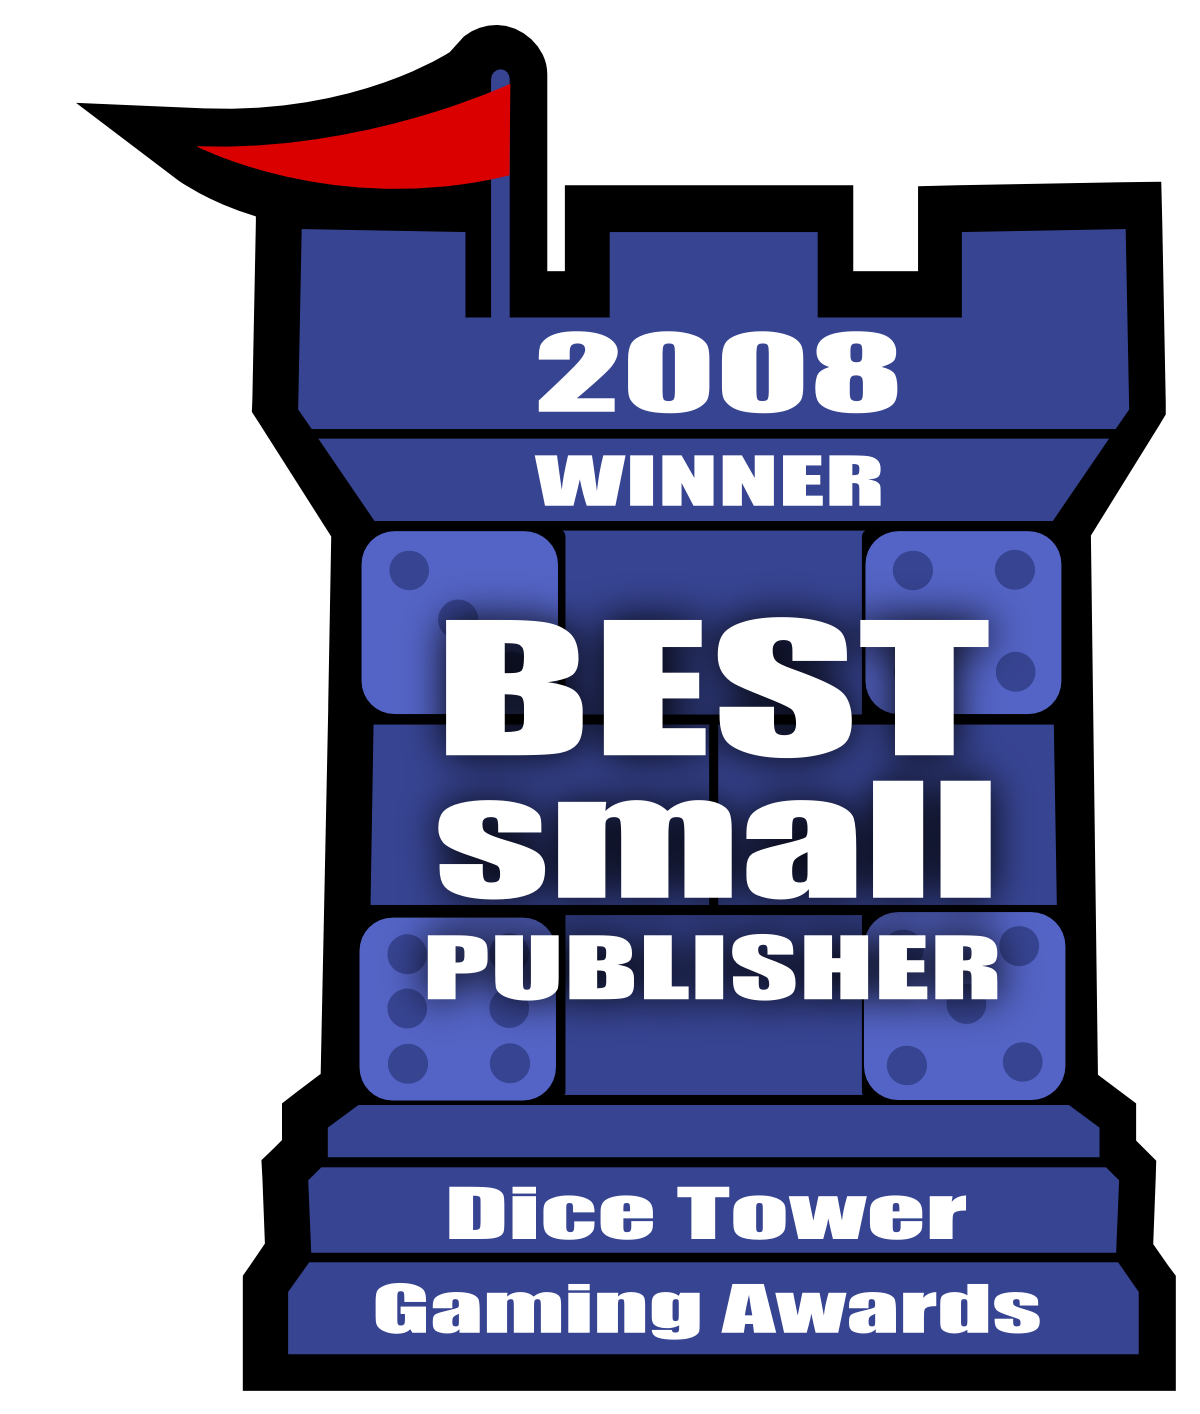 2008 Best Small Publisher Winner